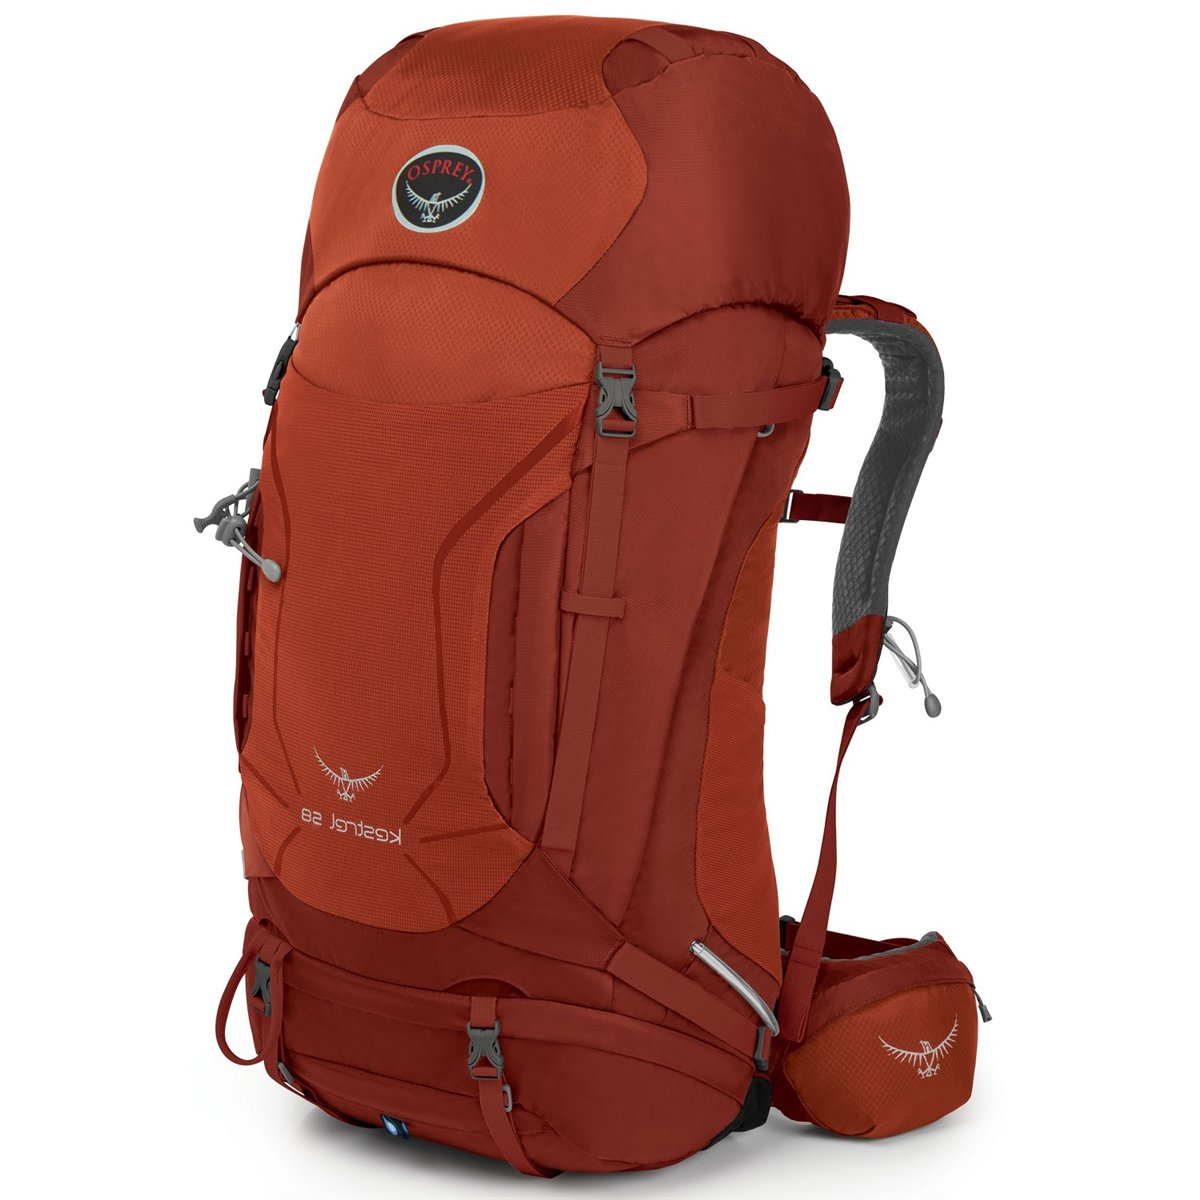 Рюкзак Osprey Kestrel 58 Jungle Green Kestrel 58 2